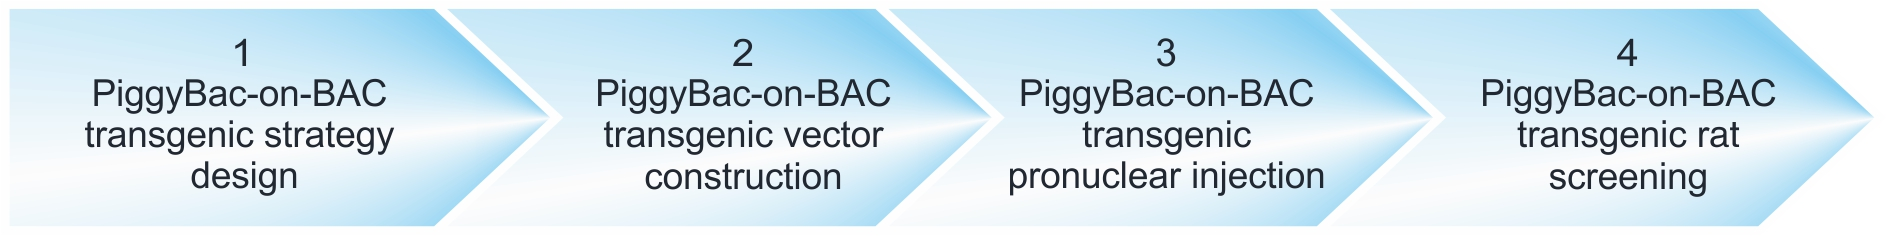 workflow of PiggyBac-on-BAC transgenic rat projects